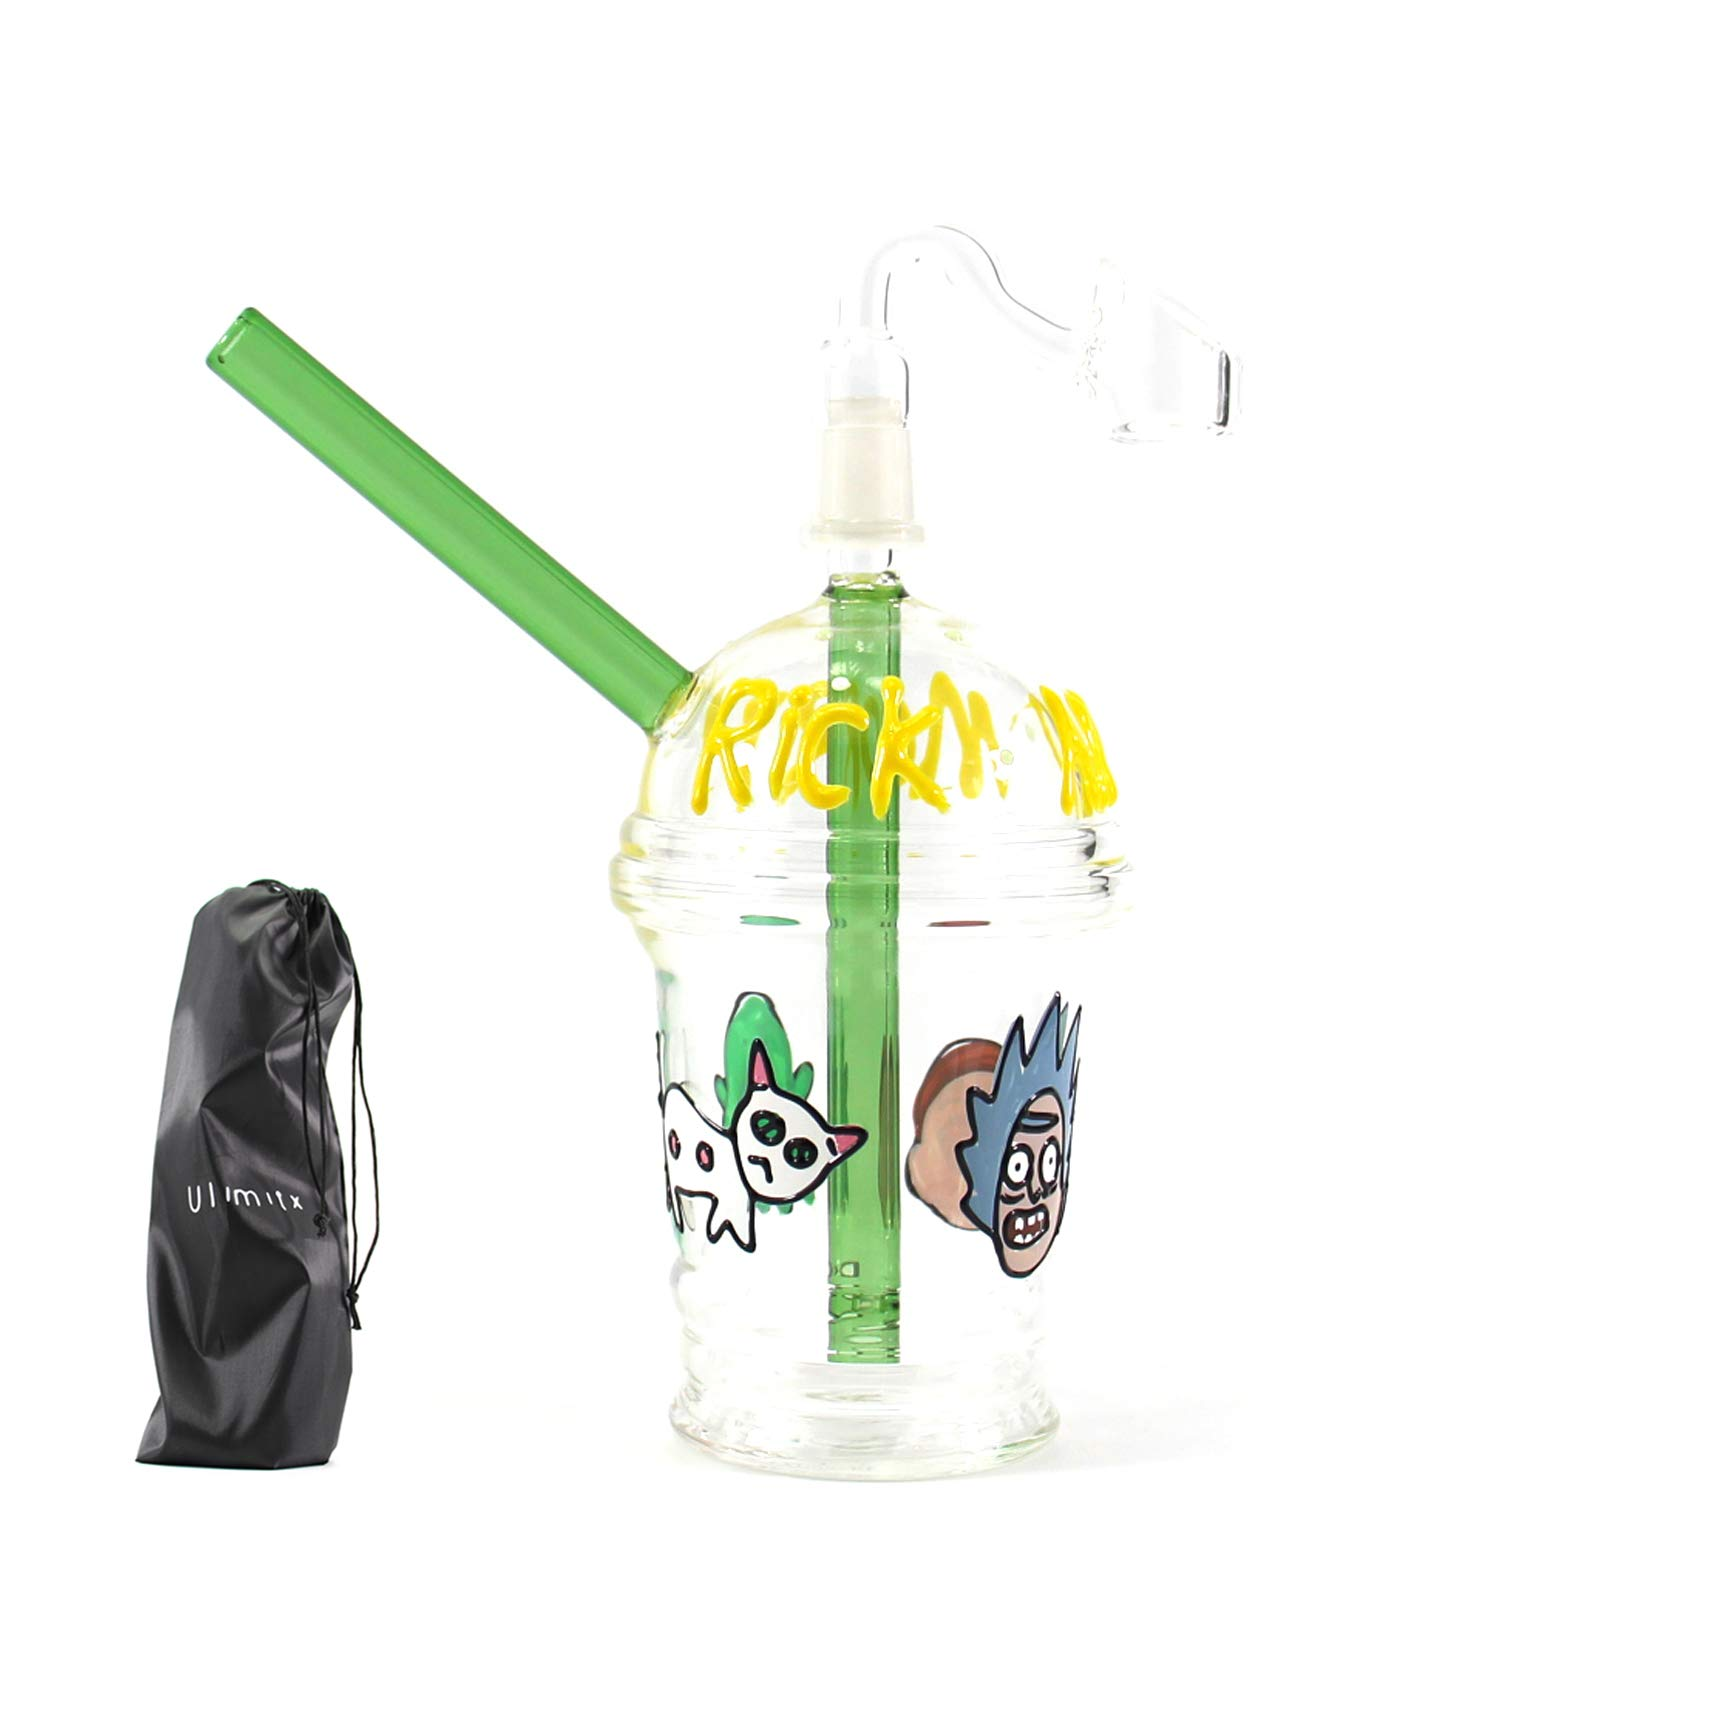 Ulimitx Handmade Glass Crafts Pipe, Glass Big Water Chamber, Clearer Perfect Bubble Effect, with Luminous Effect